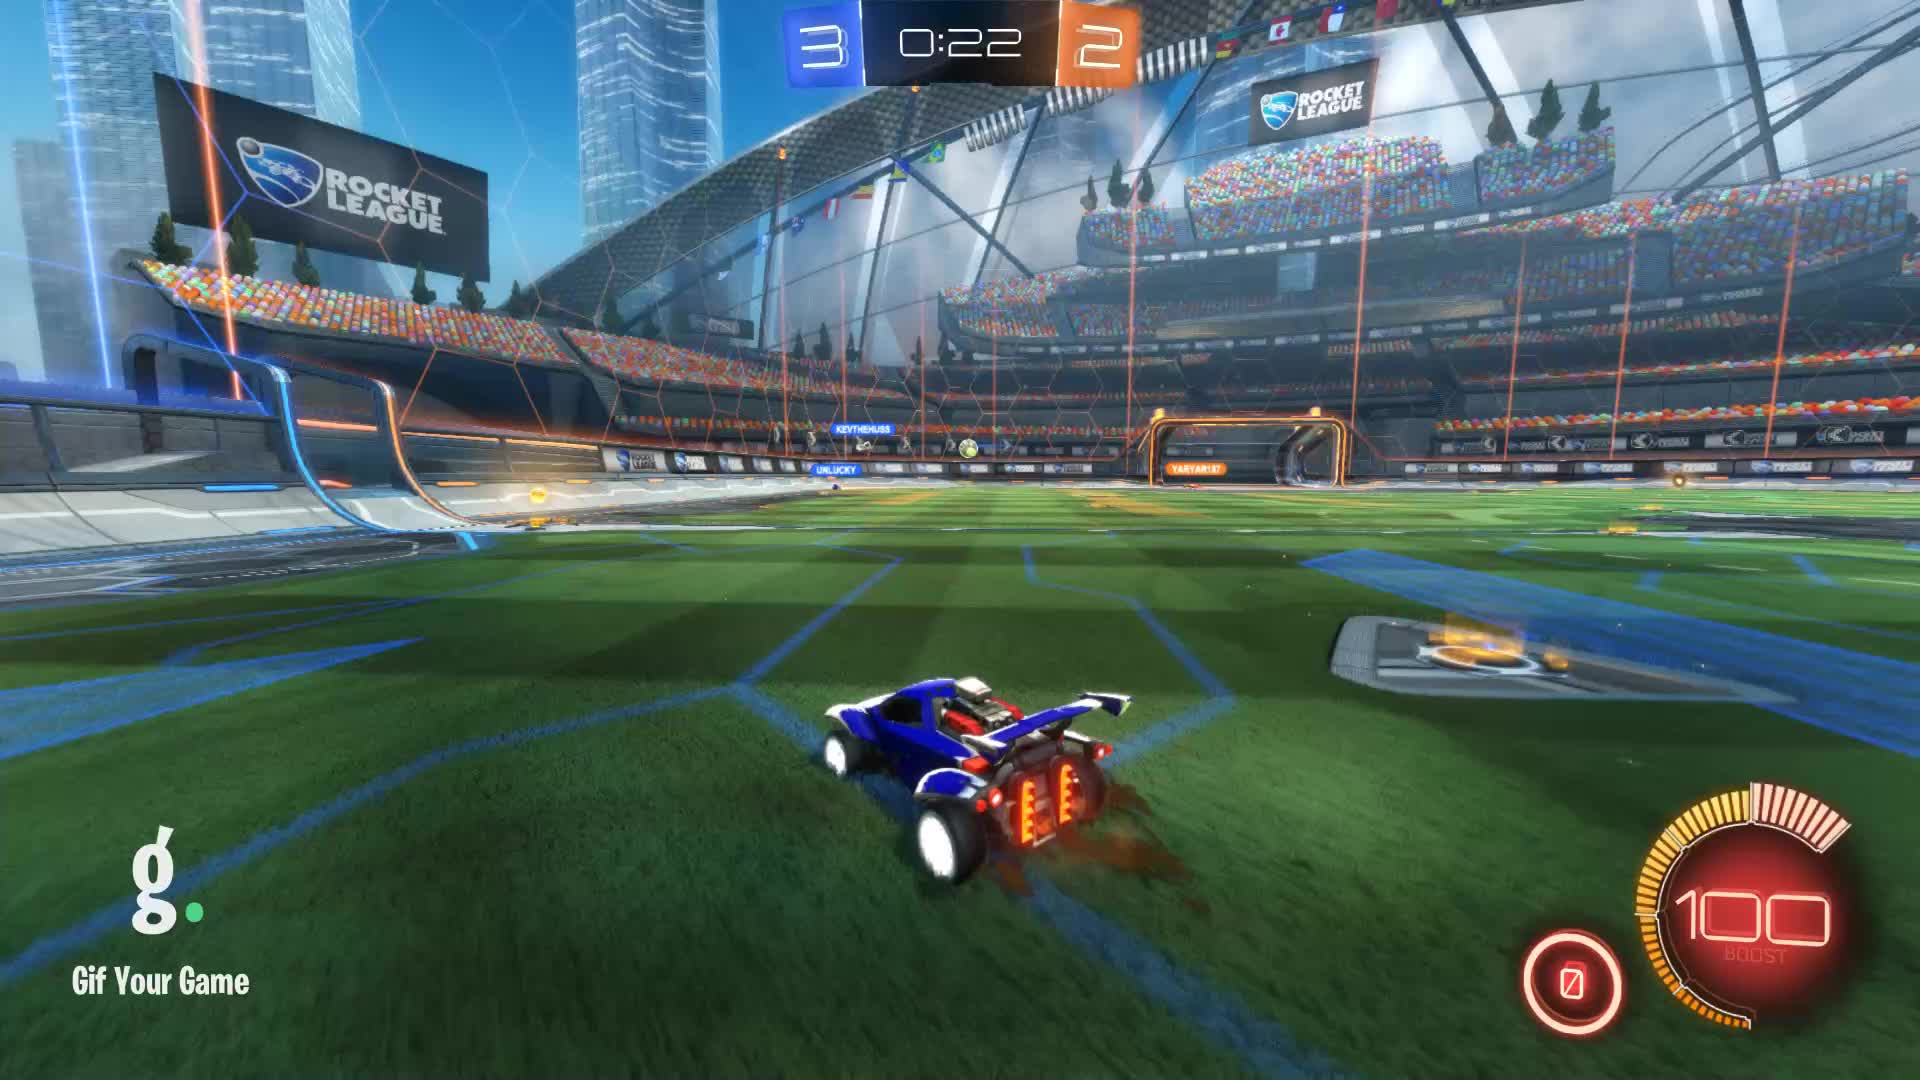 Gif Your Game, GifYourGame, Goal, Horizon, Rocket League, RocketLeague, Goal 6: Horizon GIFs